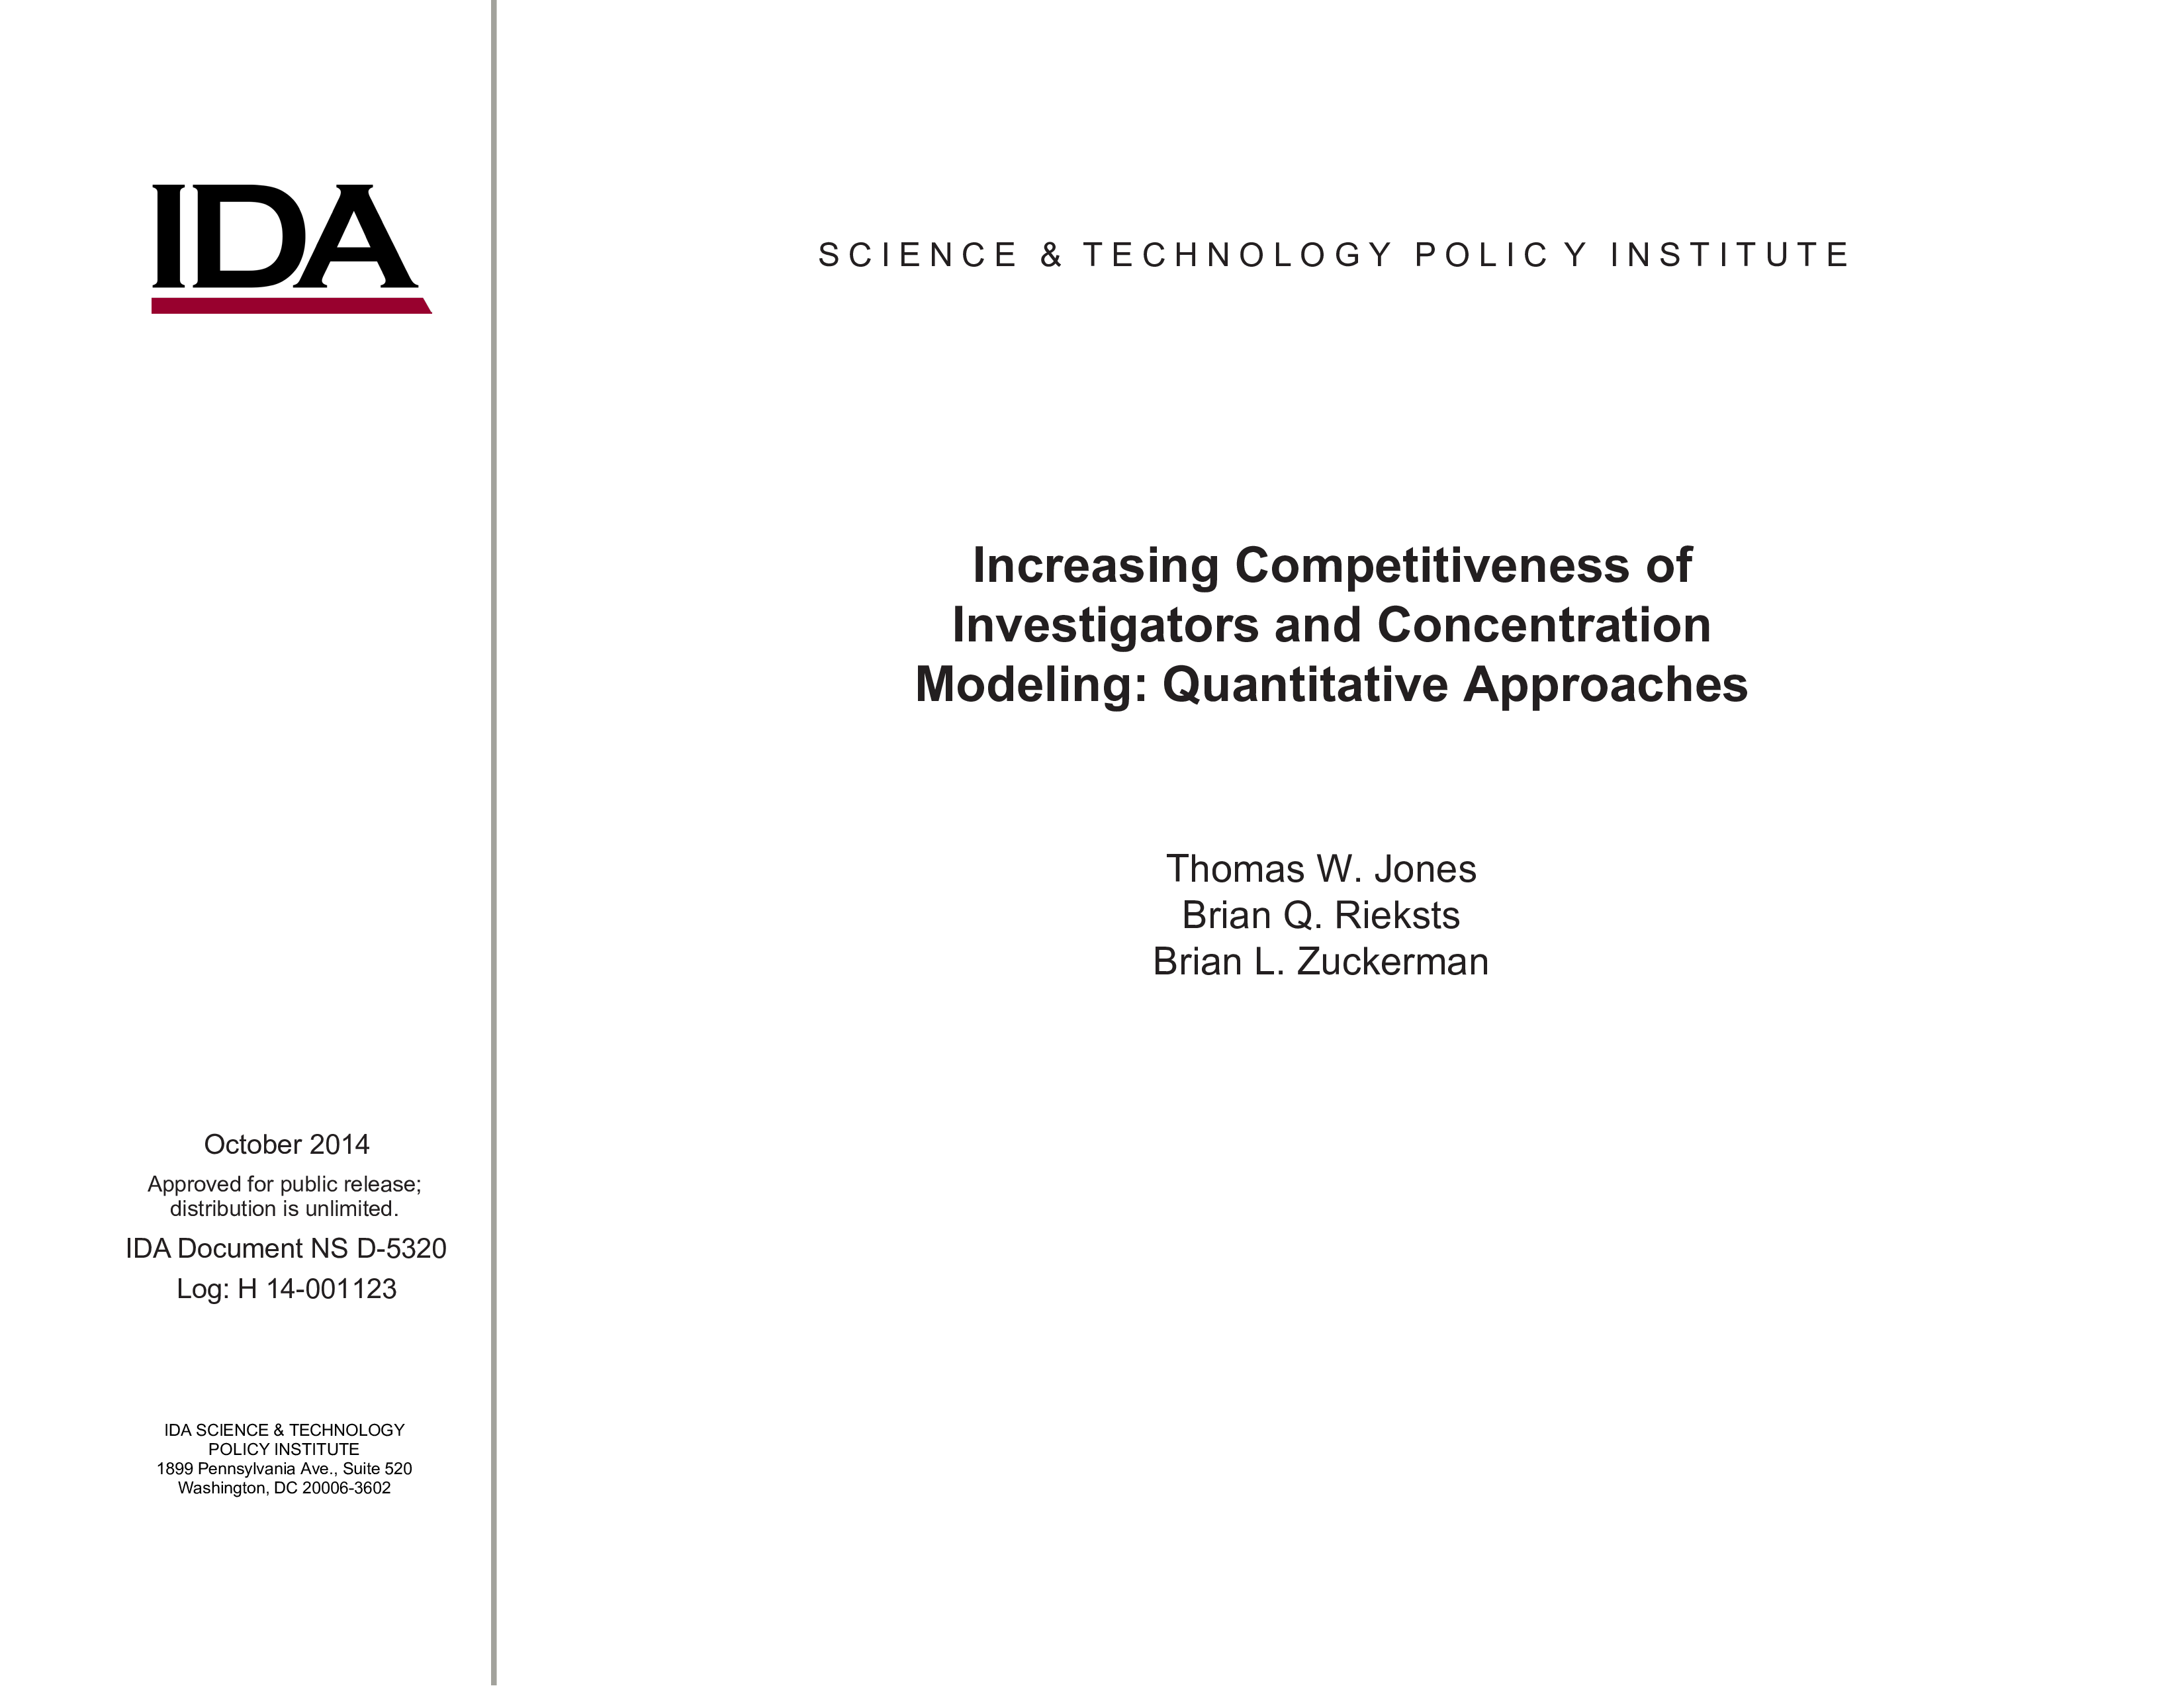 Increasing Competitiveness of Investigators and Concentration Modeling: Quantitative Approaches